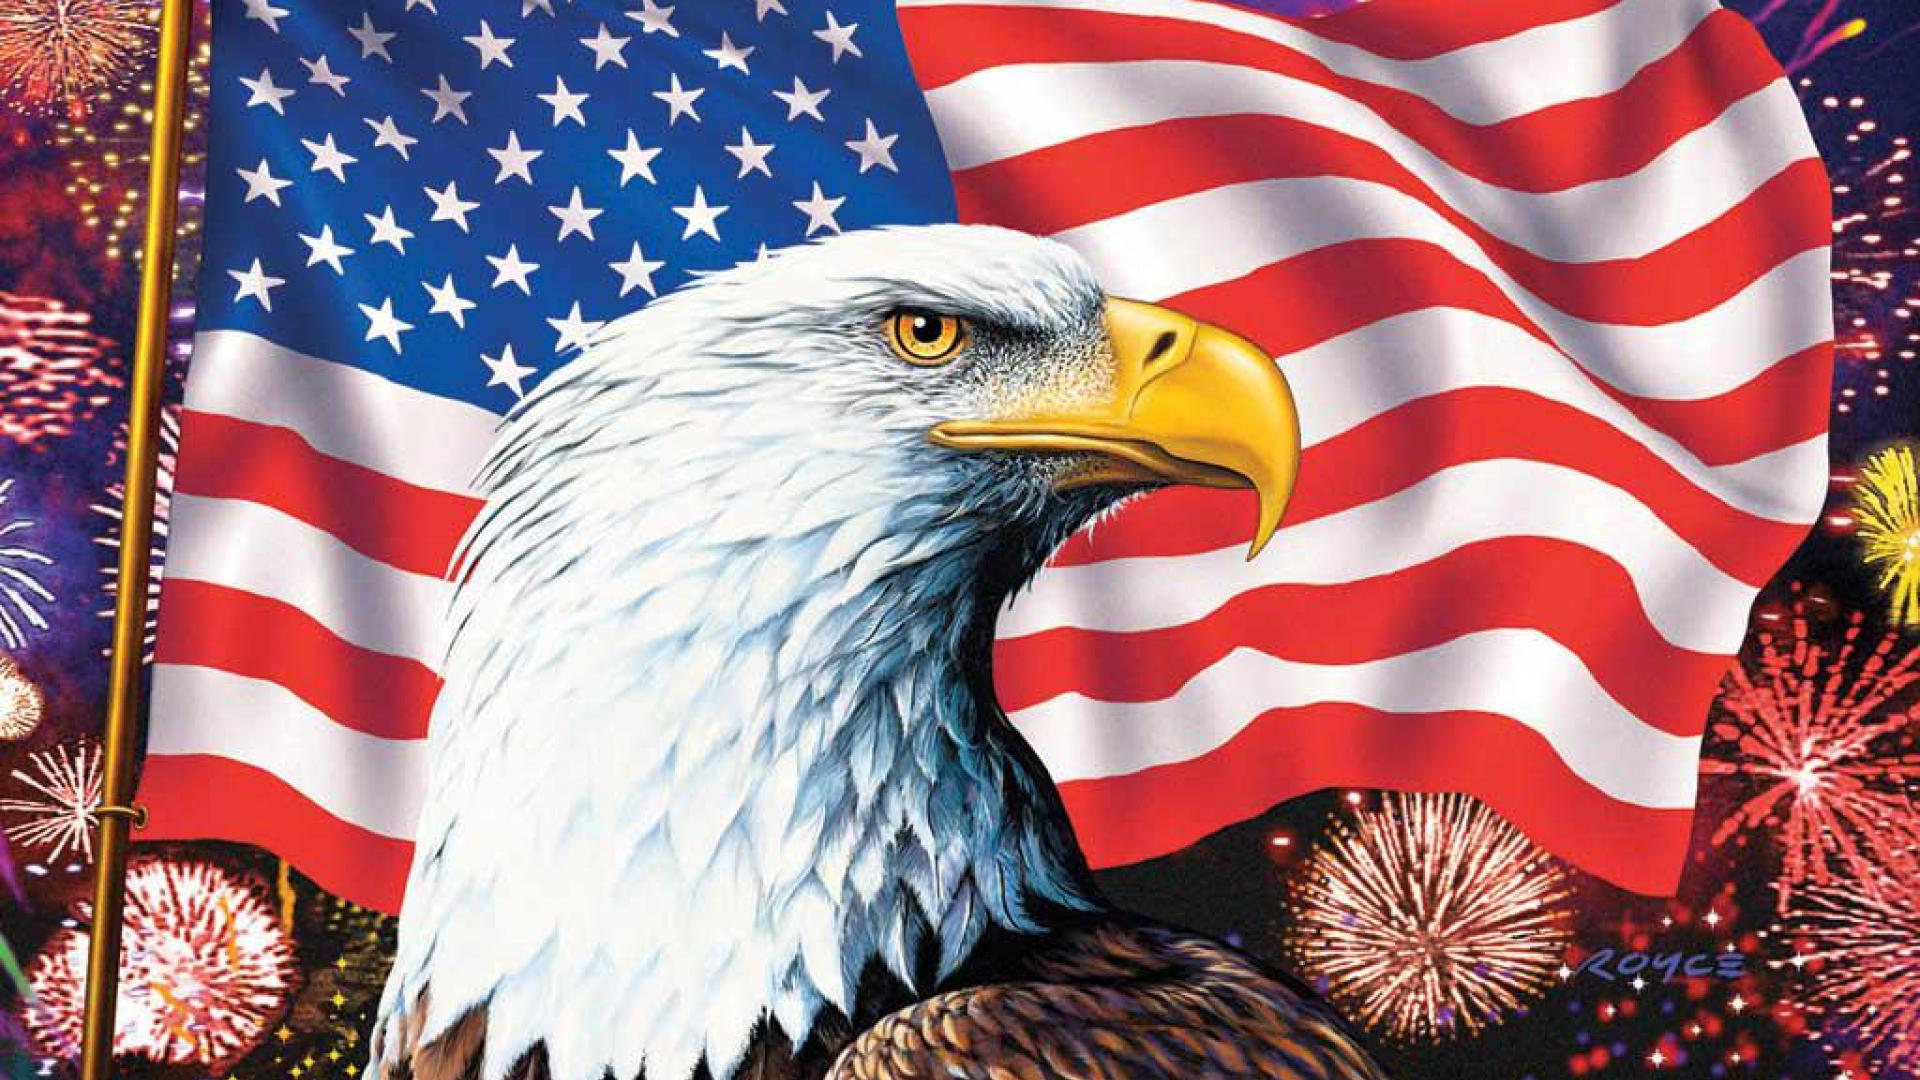 bald eagle american flag wallpaper